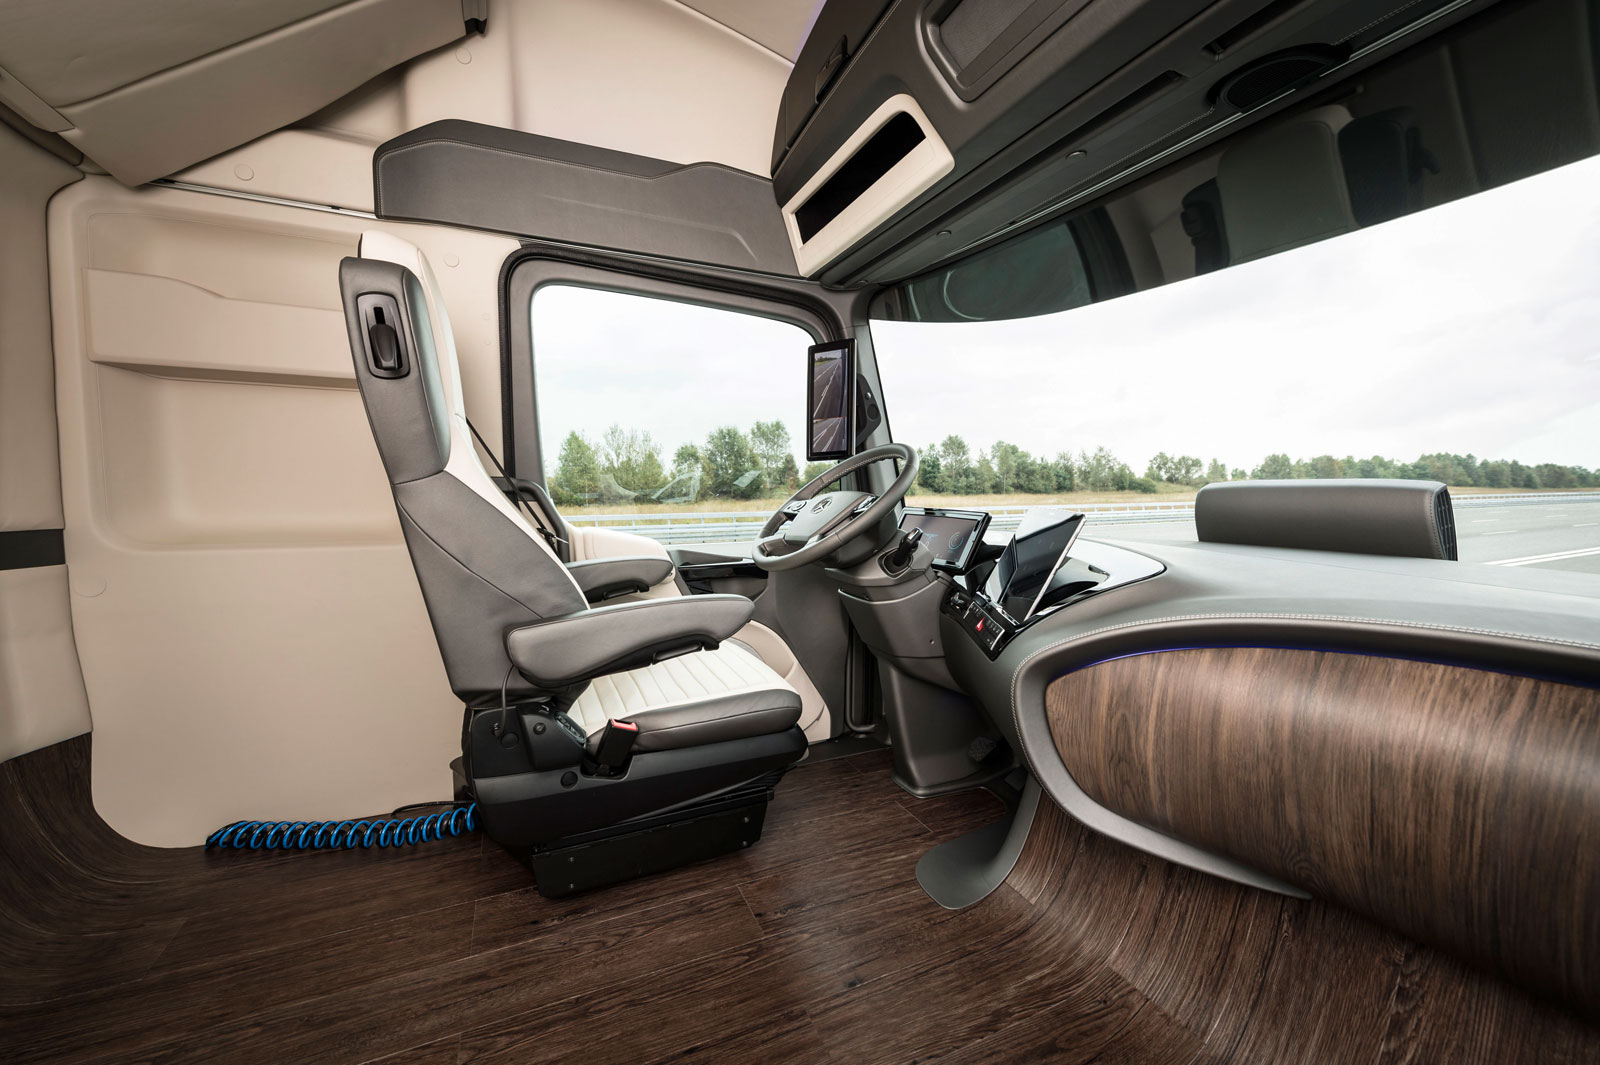 mercedes benz future truck 2025 concept interior car body design. Black Bedroom Furniture Sets. Home Design Ideas